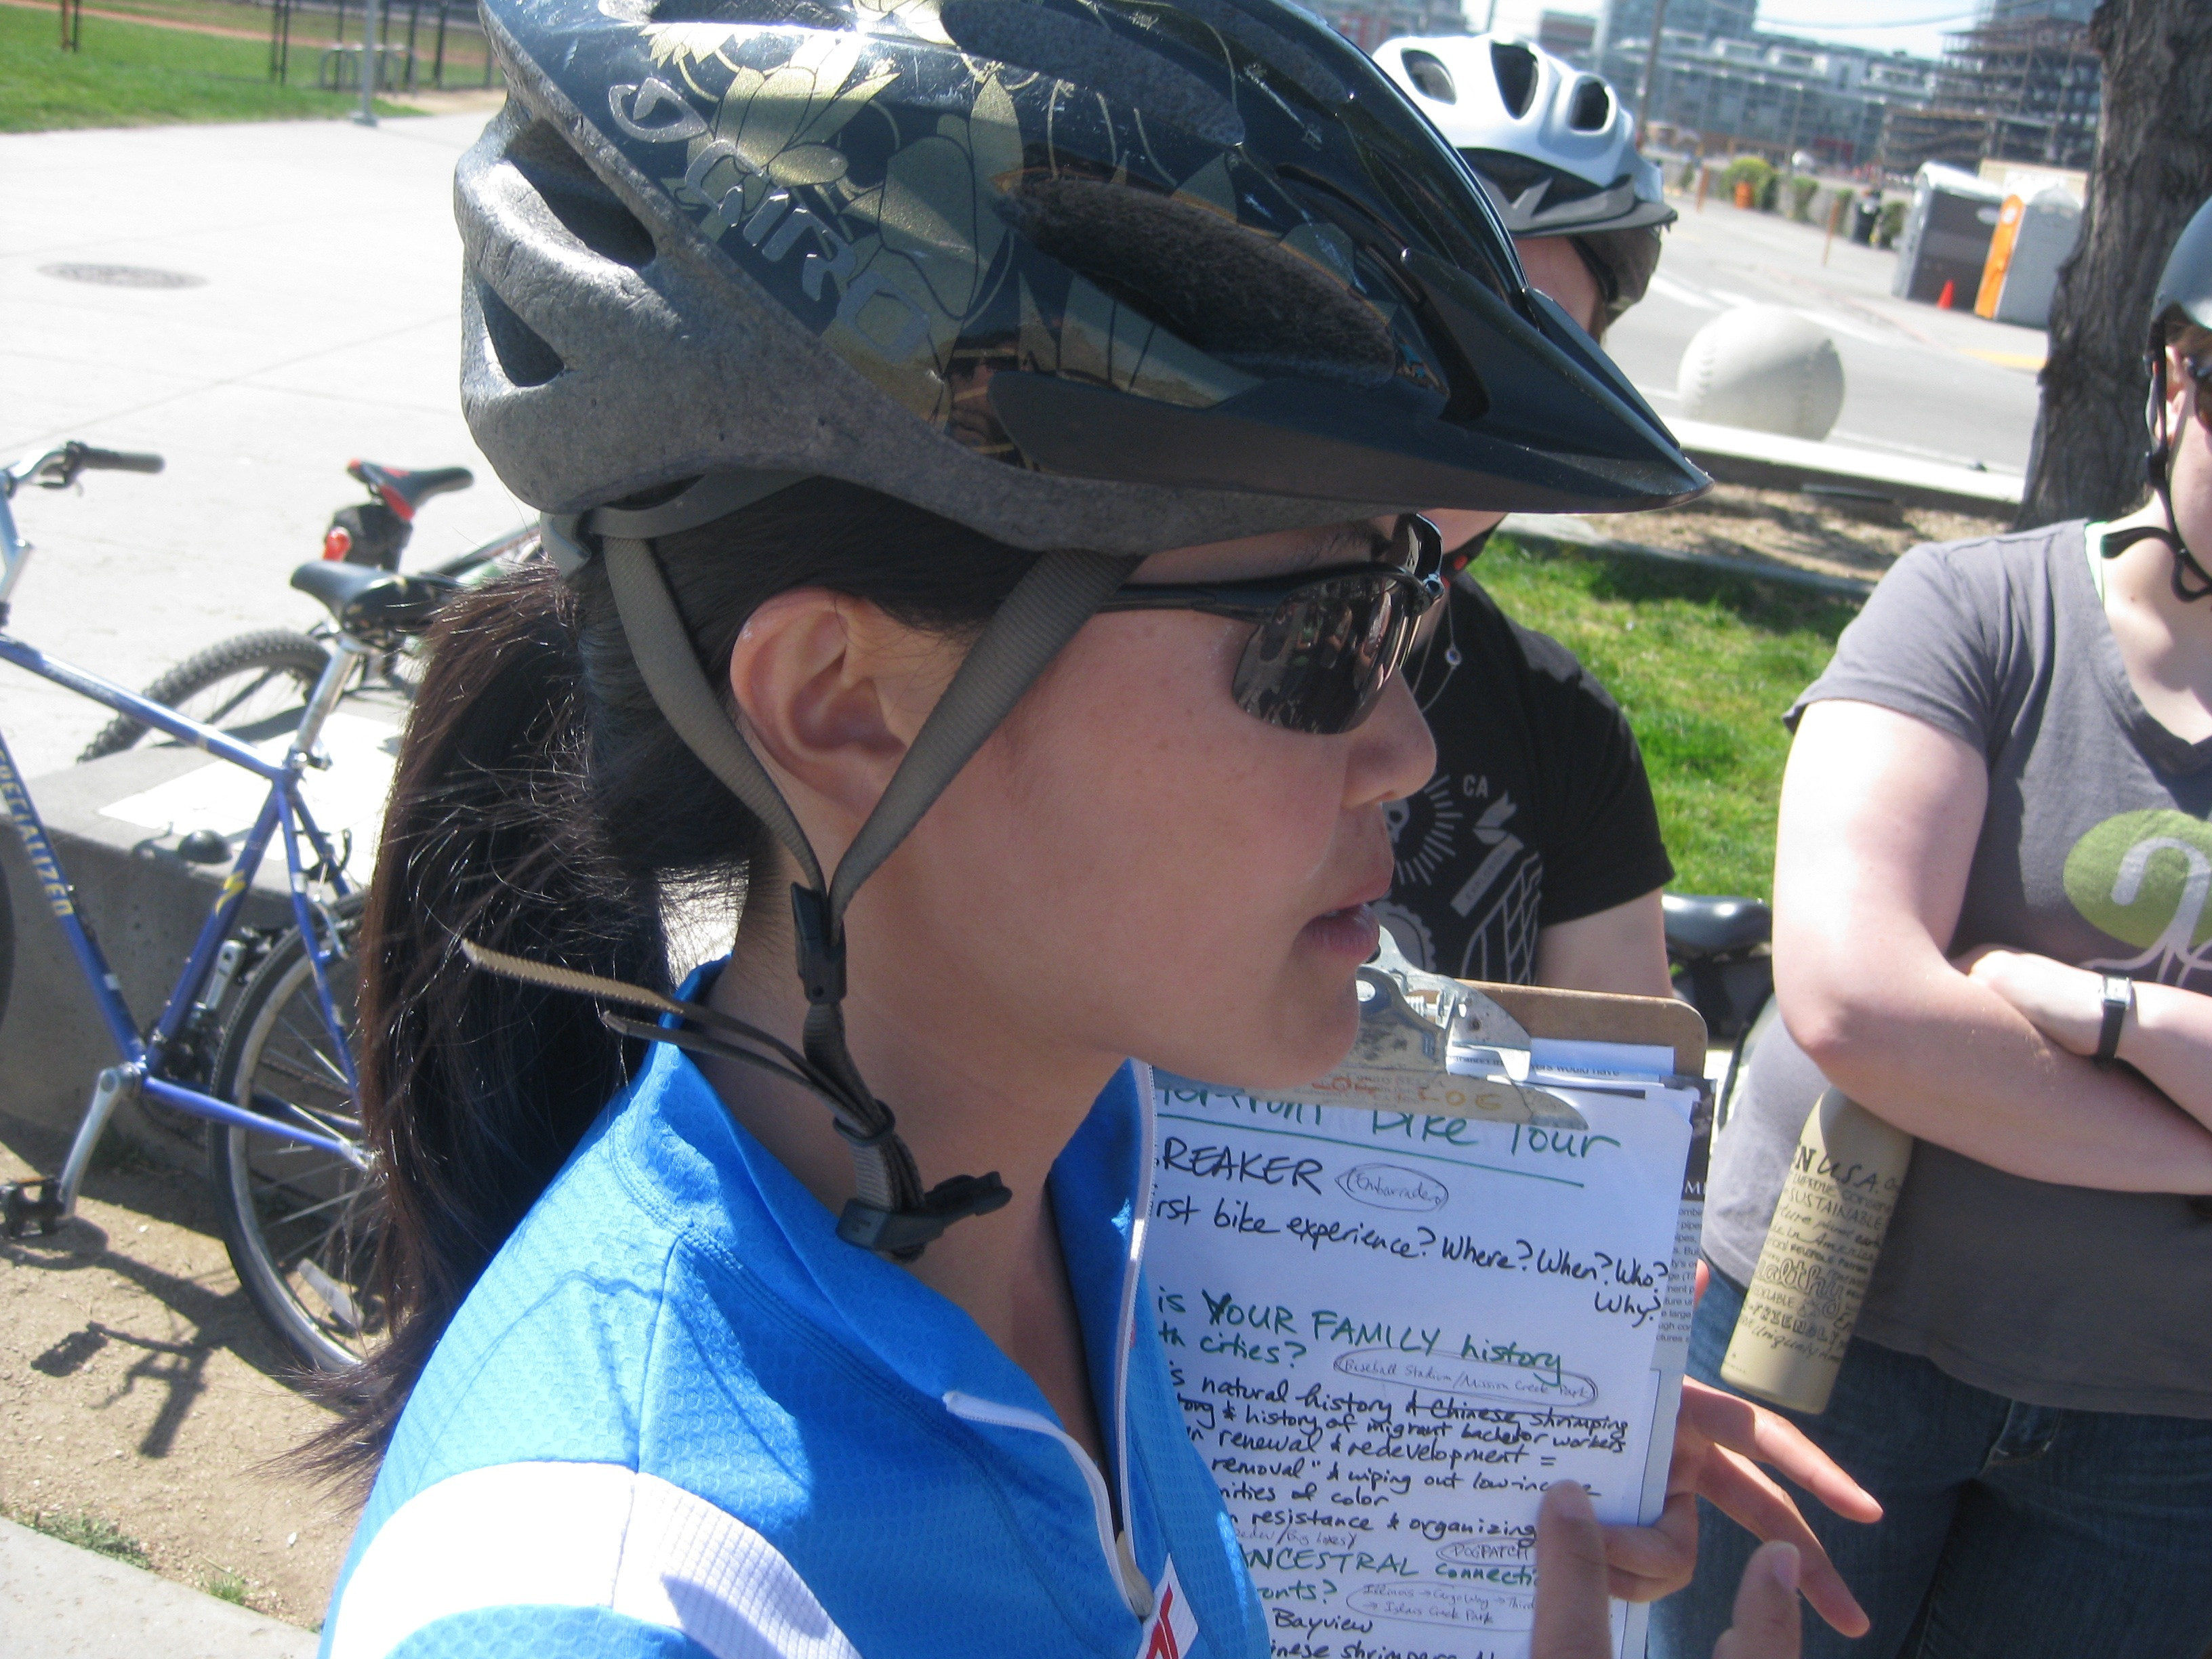 Caption: Tracy Zhu talking to cyclists on her toxic tour, Credit: Laura Flynn